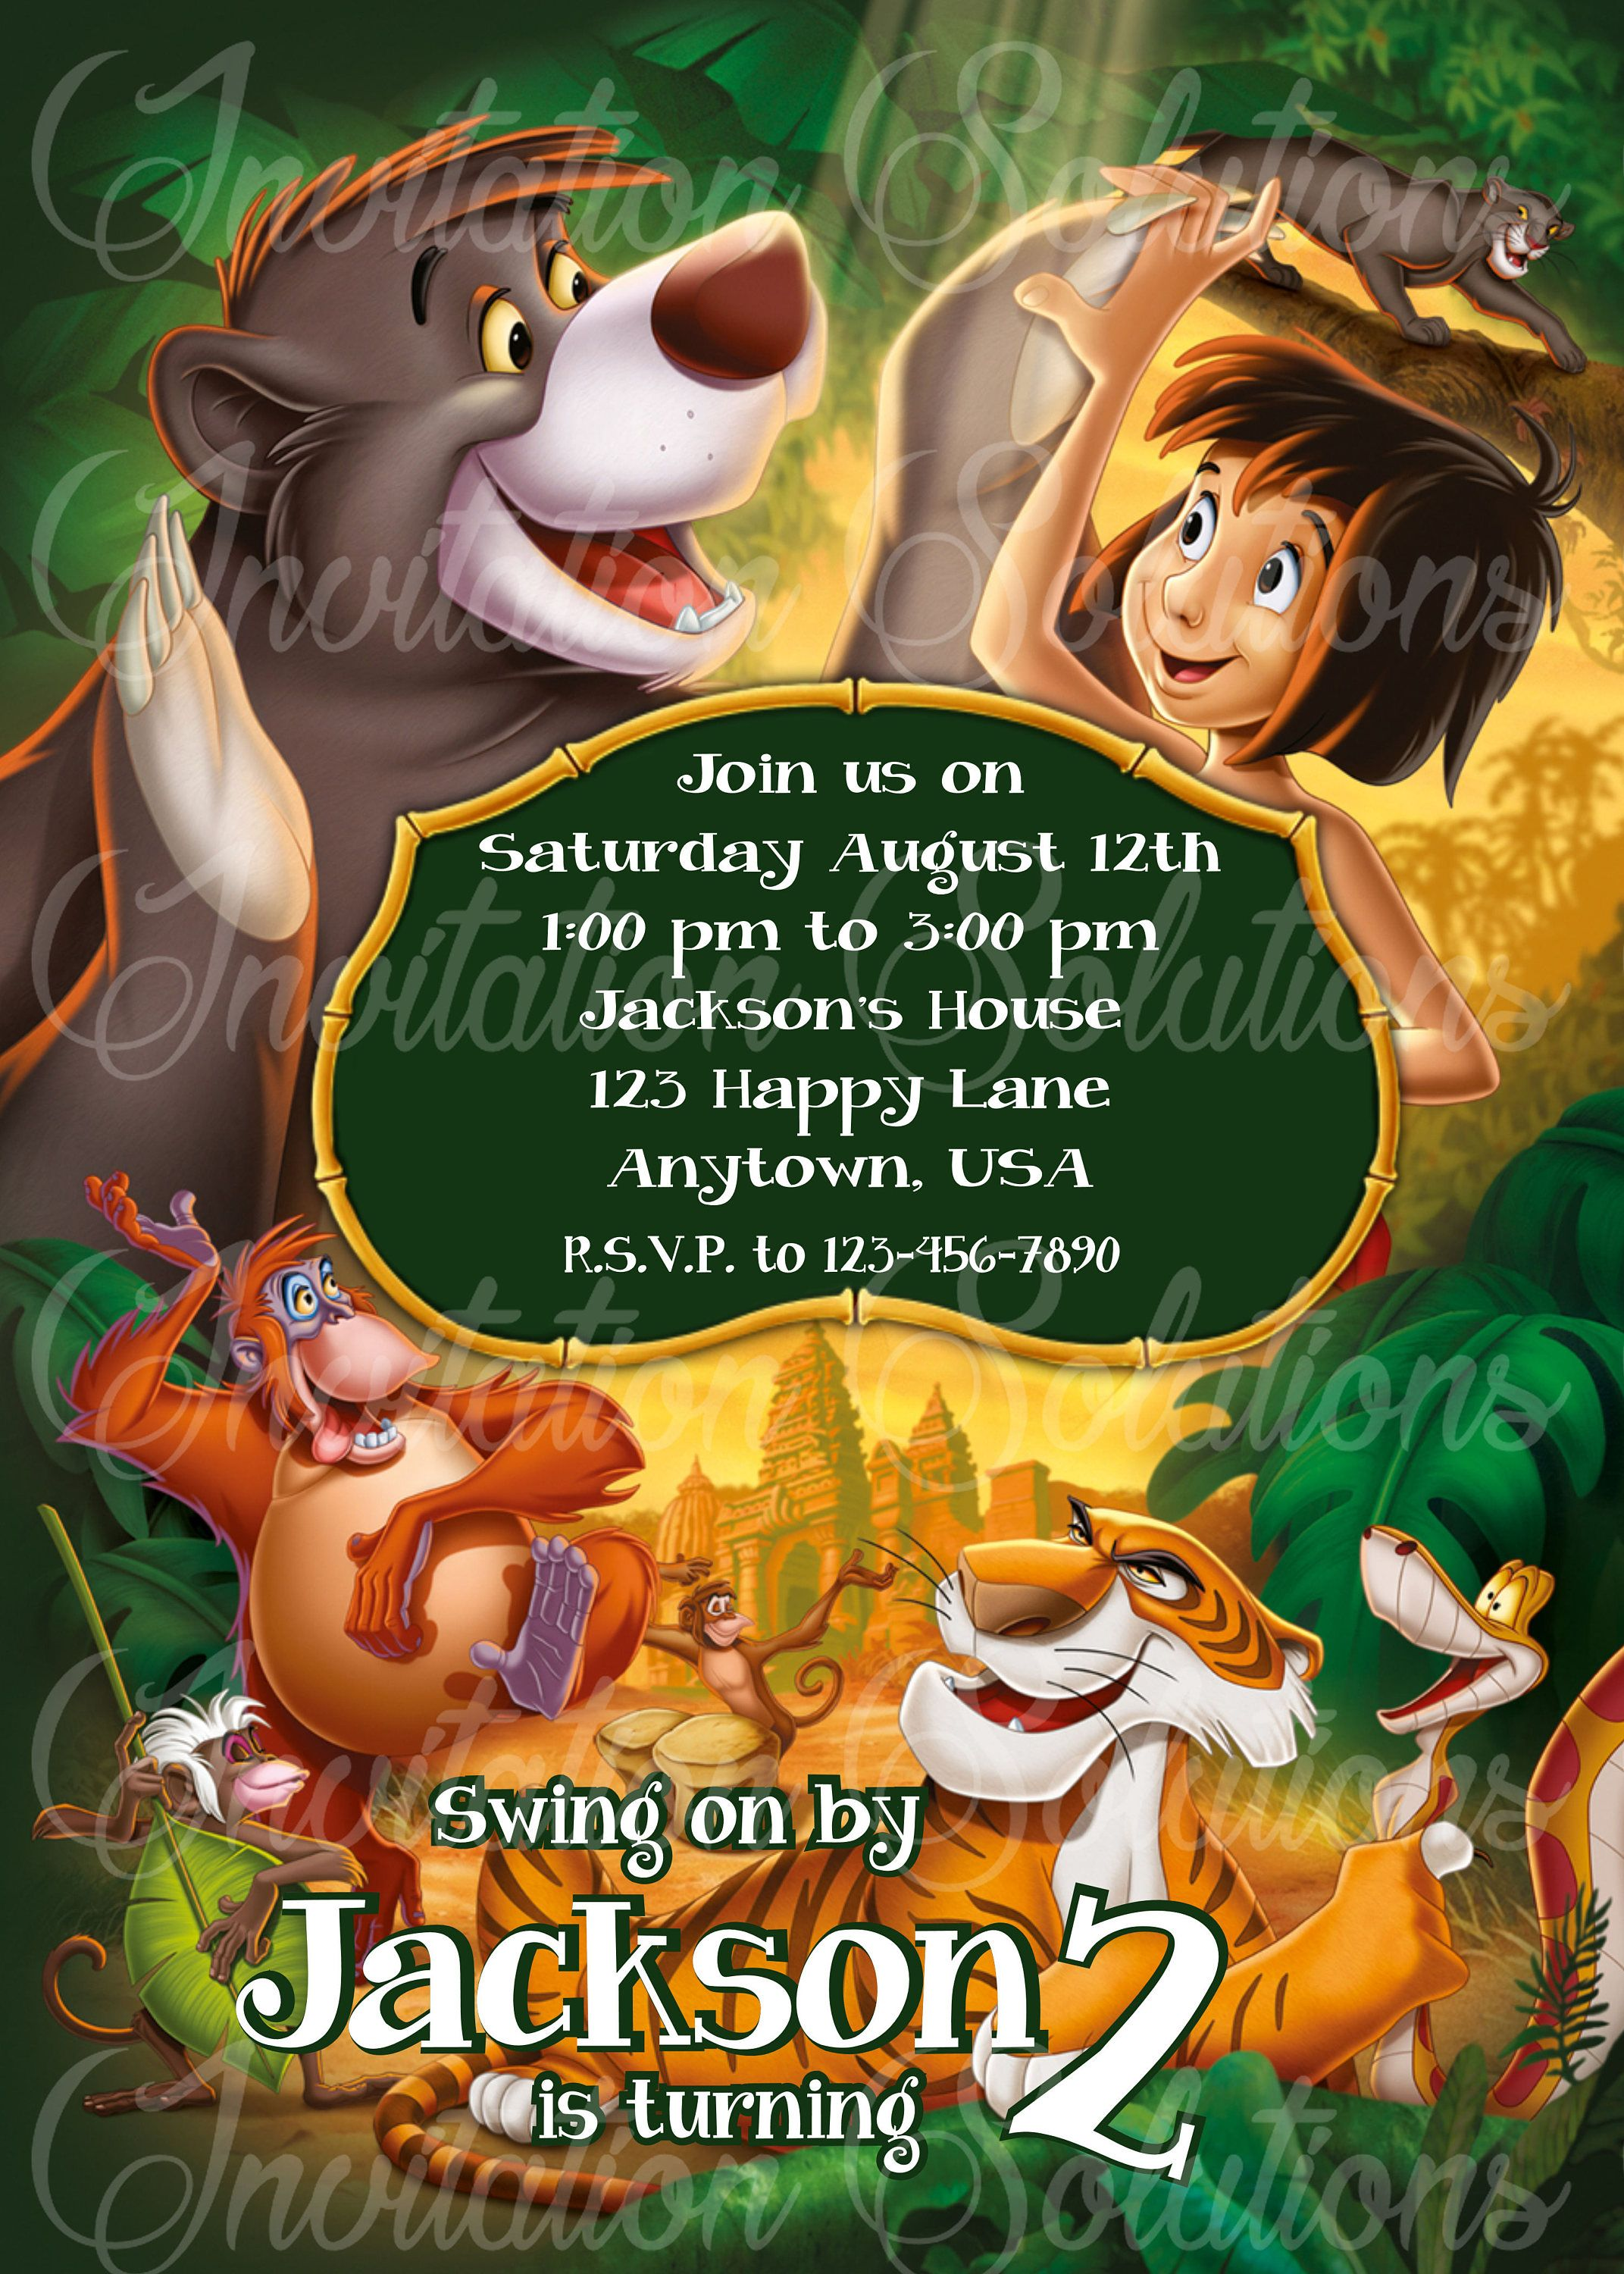 The jungle book birthday party invitation disney movie the jungle the jungle book birthday party invitation disney movie the jungle book party invite by invitesolution stopboris Choice Image